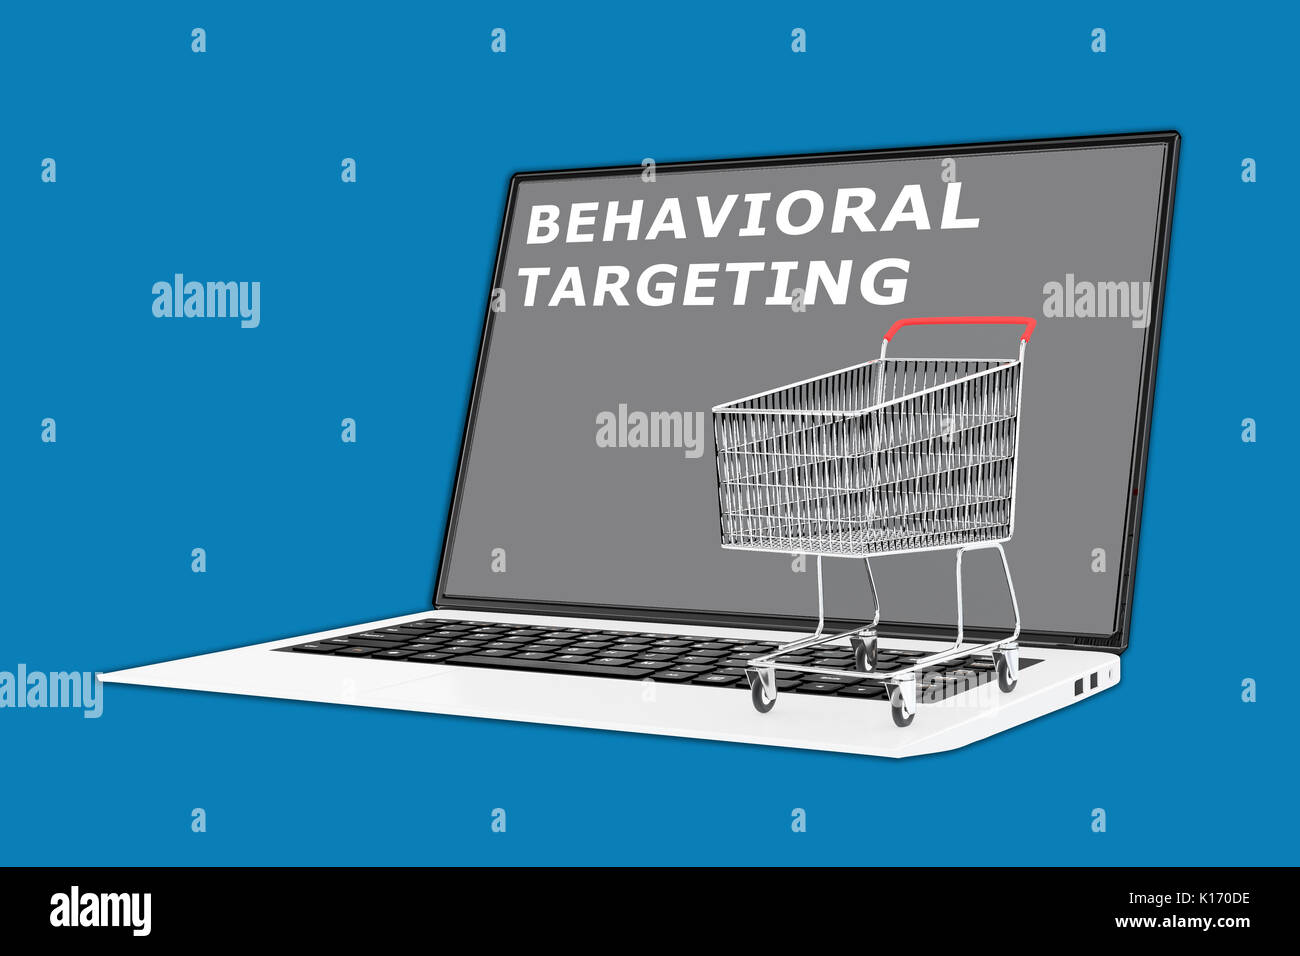 3D illustration of 'BEHAVIORAL TARGETING' script with a supermarket cart placed on the keyboard - Stock Image